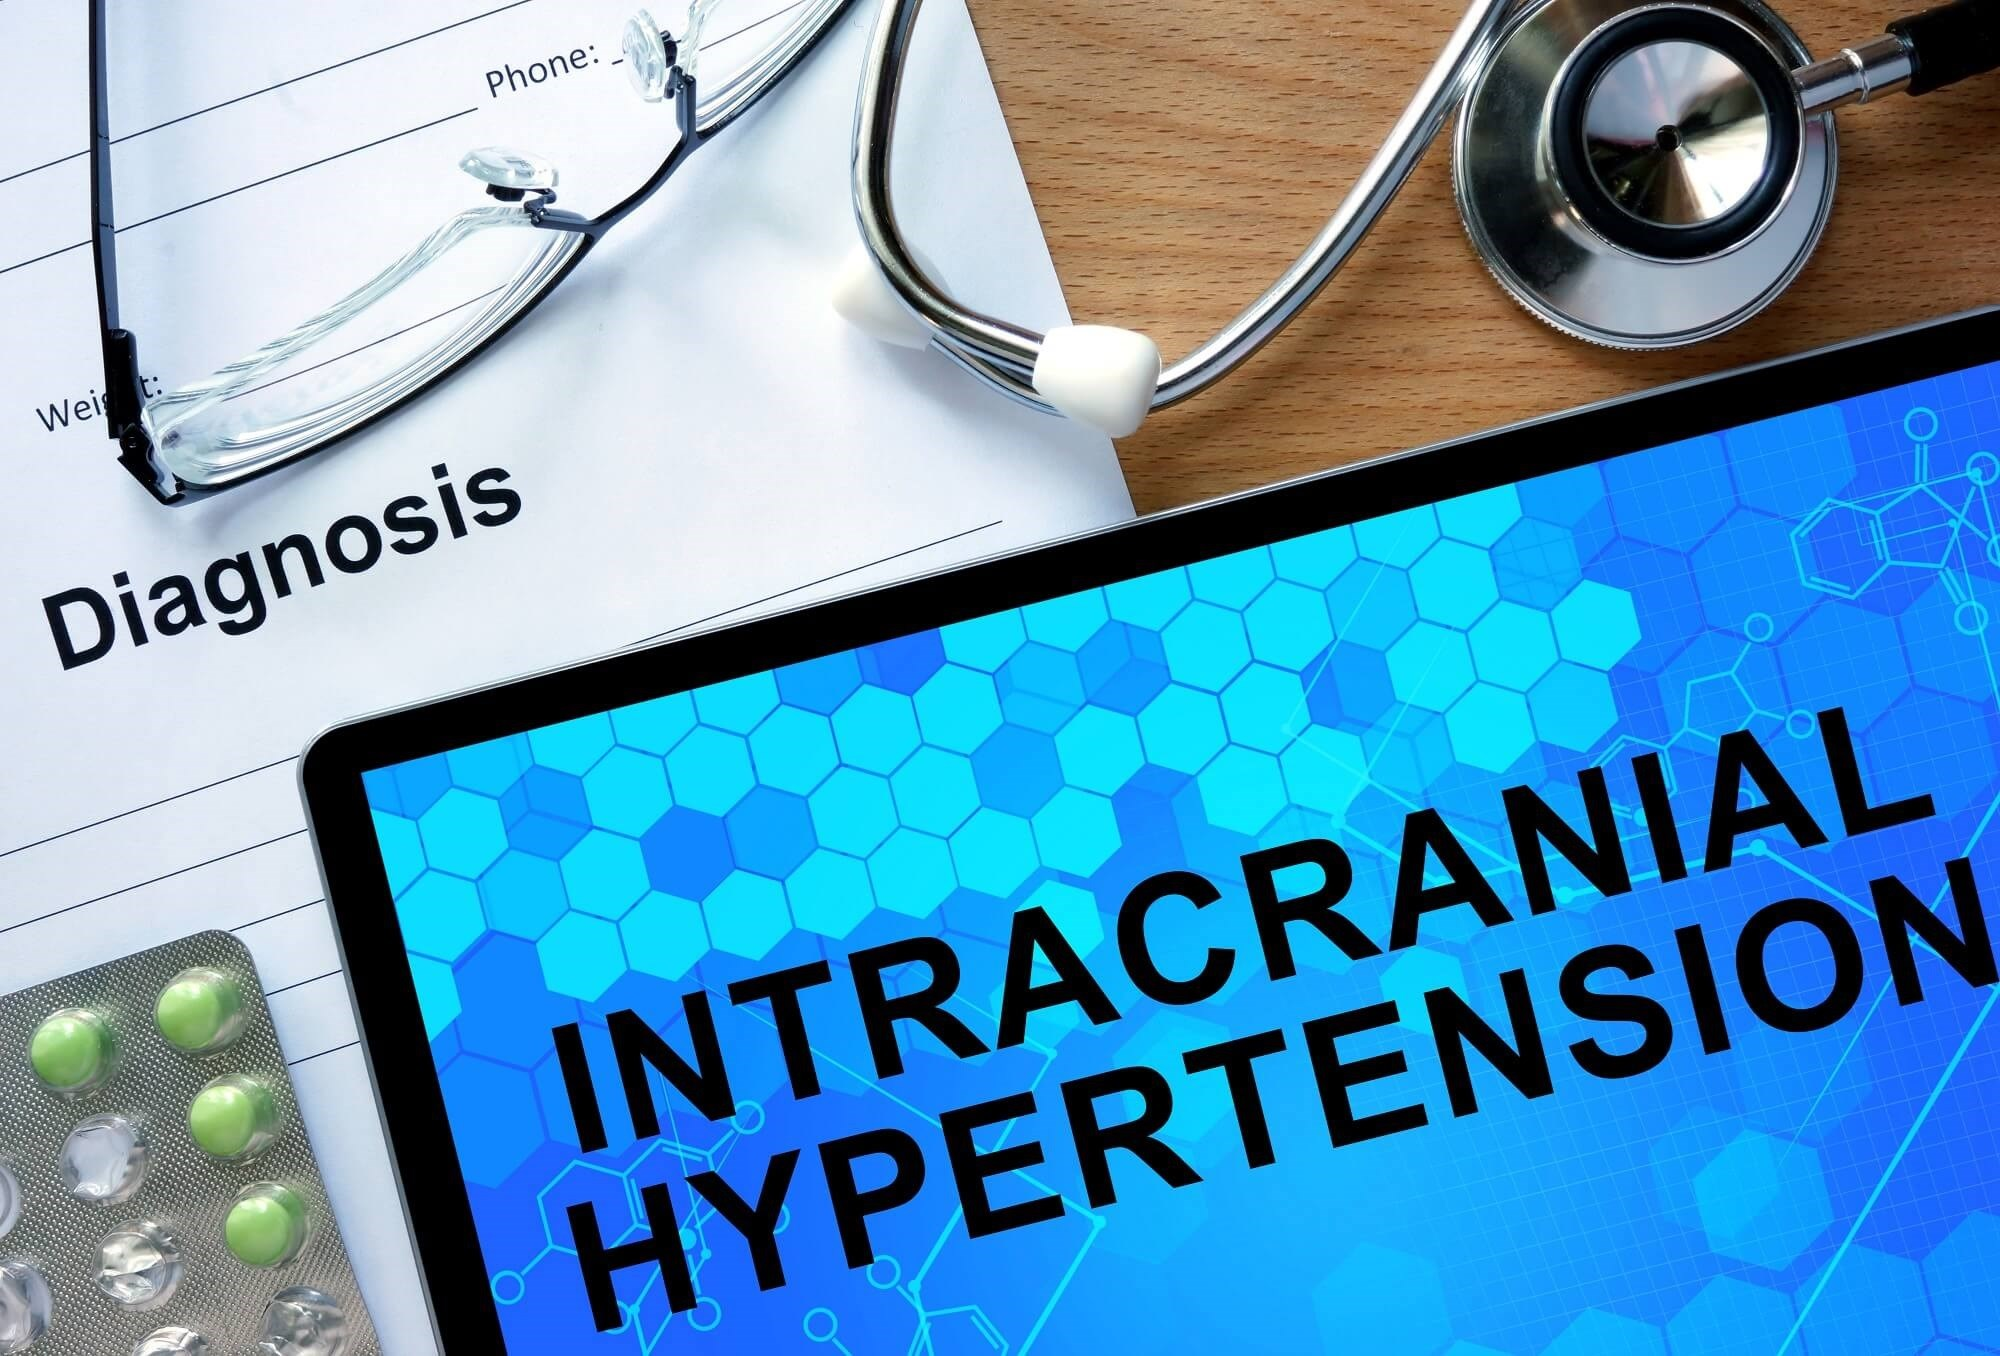 Guideline for Diagnosis and Treatment of Idiopathic Intracranial Hypertension